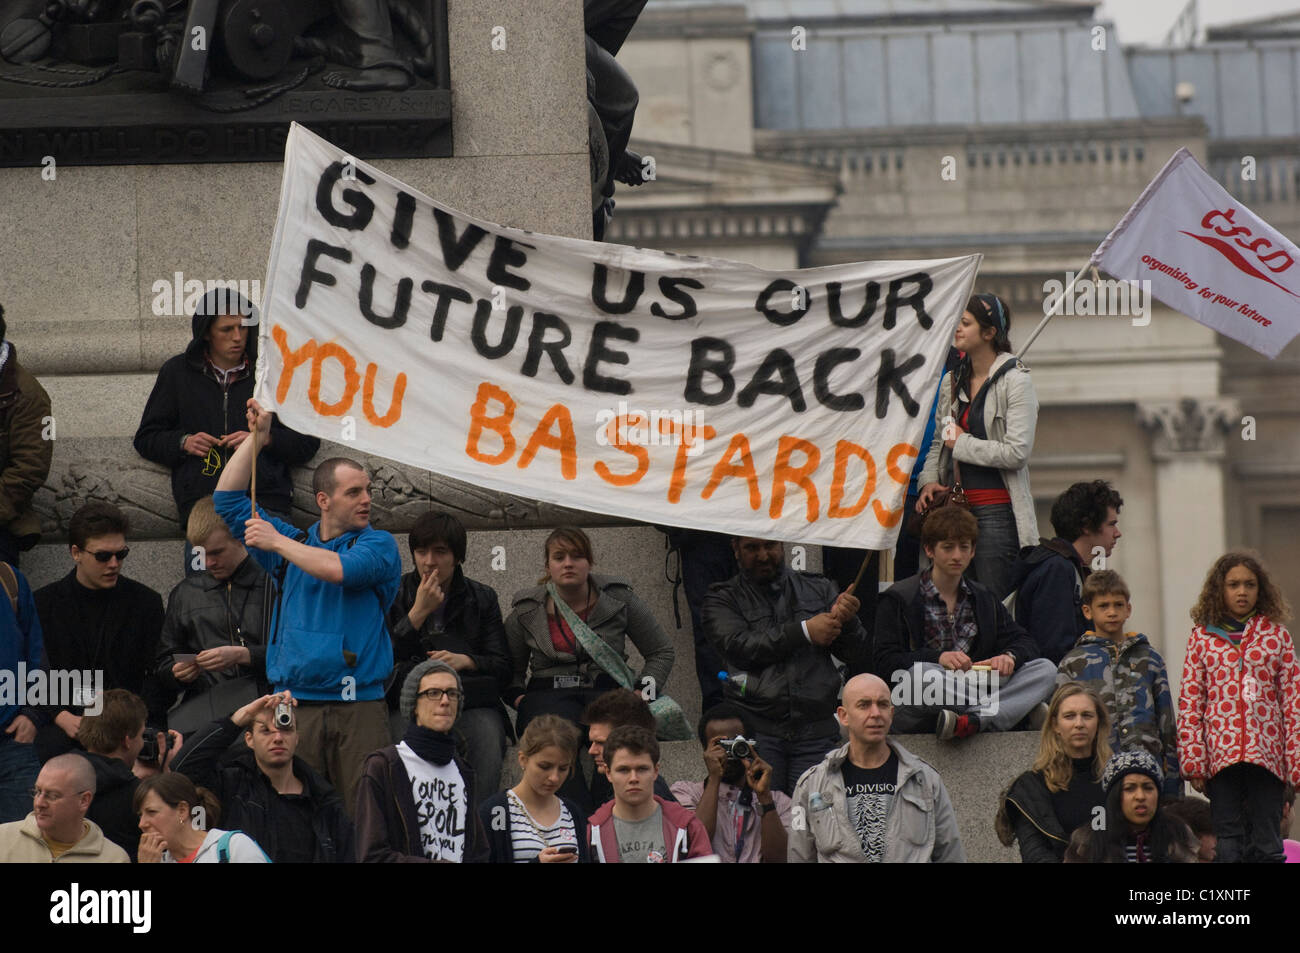 Protesters against UK government cuts with banner at the base of Nelson's Column in London's Trafalgar Square, - Stock Image